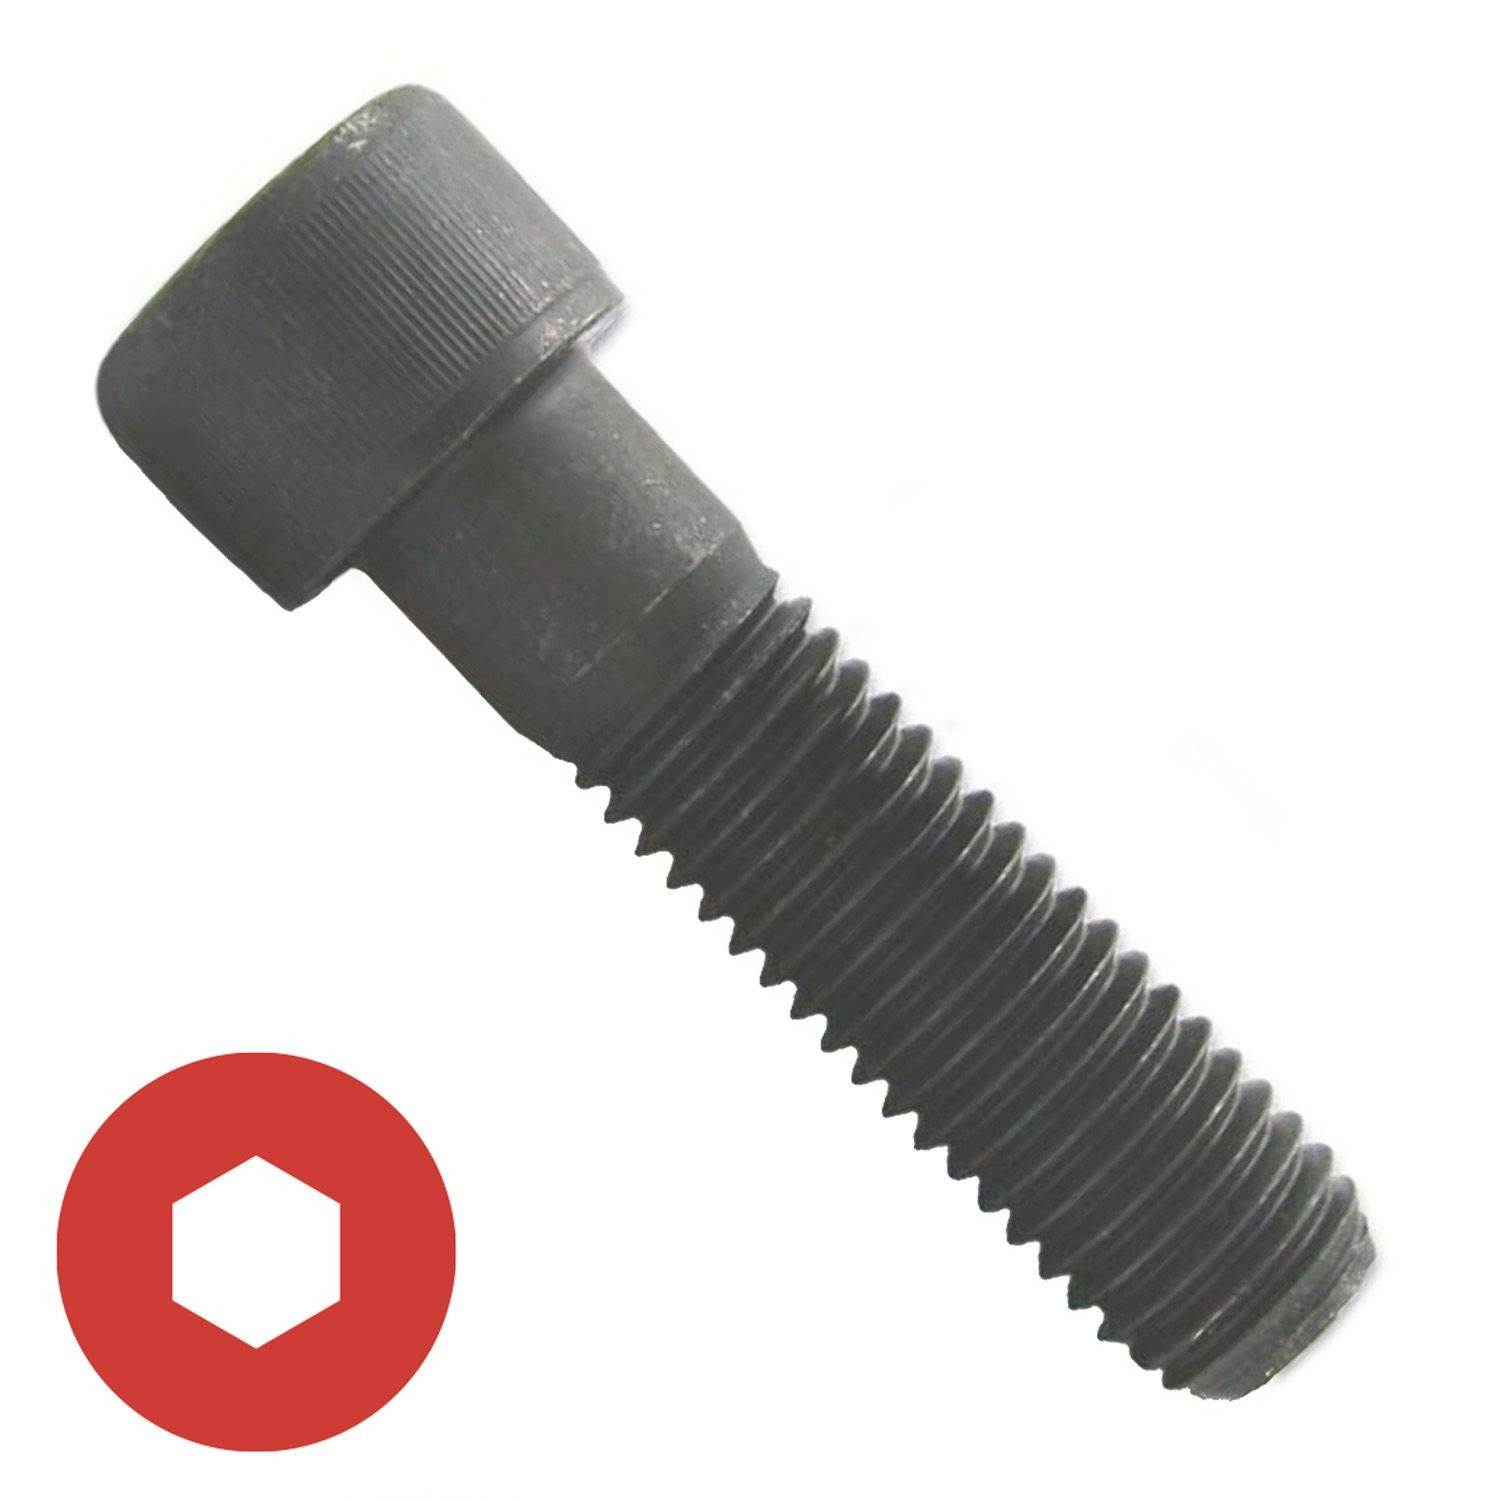 "#12-24 x 1"" Socket Head Cap Screw"